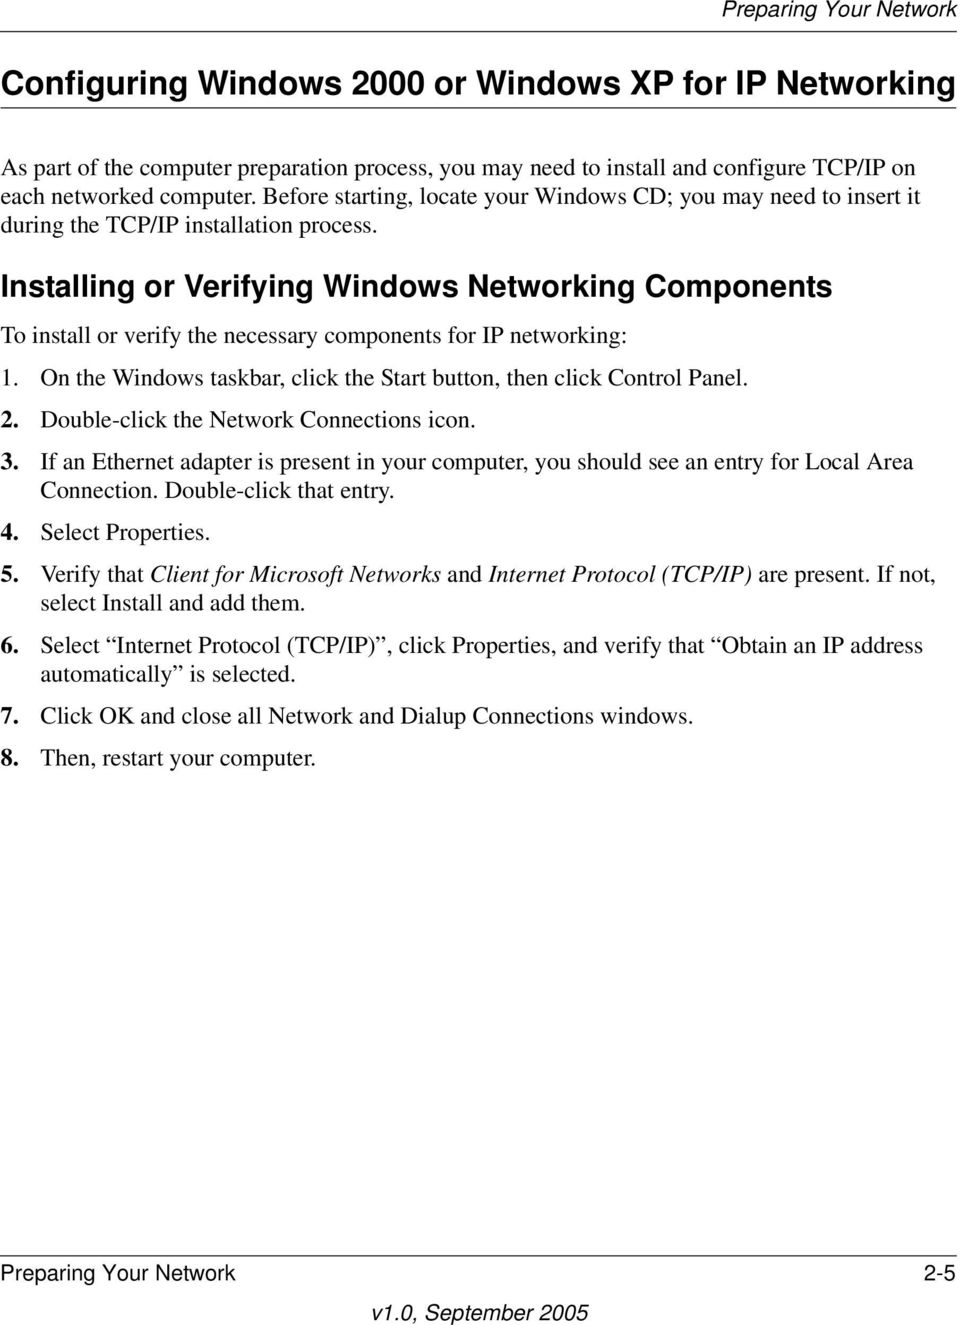 Installing or Verifying Windows Networking Components To install or verify the necessary components for IP networking: 1. On the Windows taskbar, click the Start button, then click Control Panel. 2.